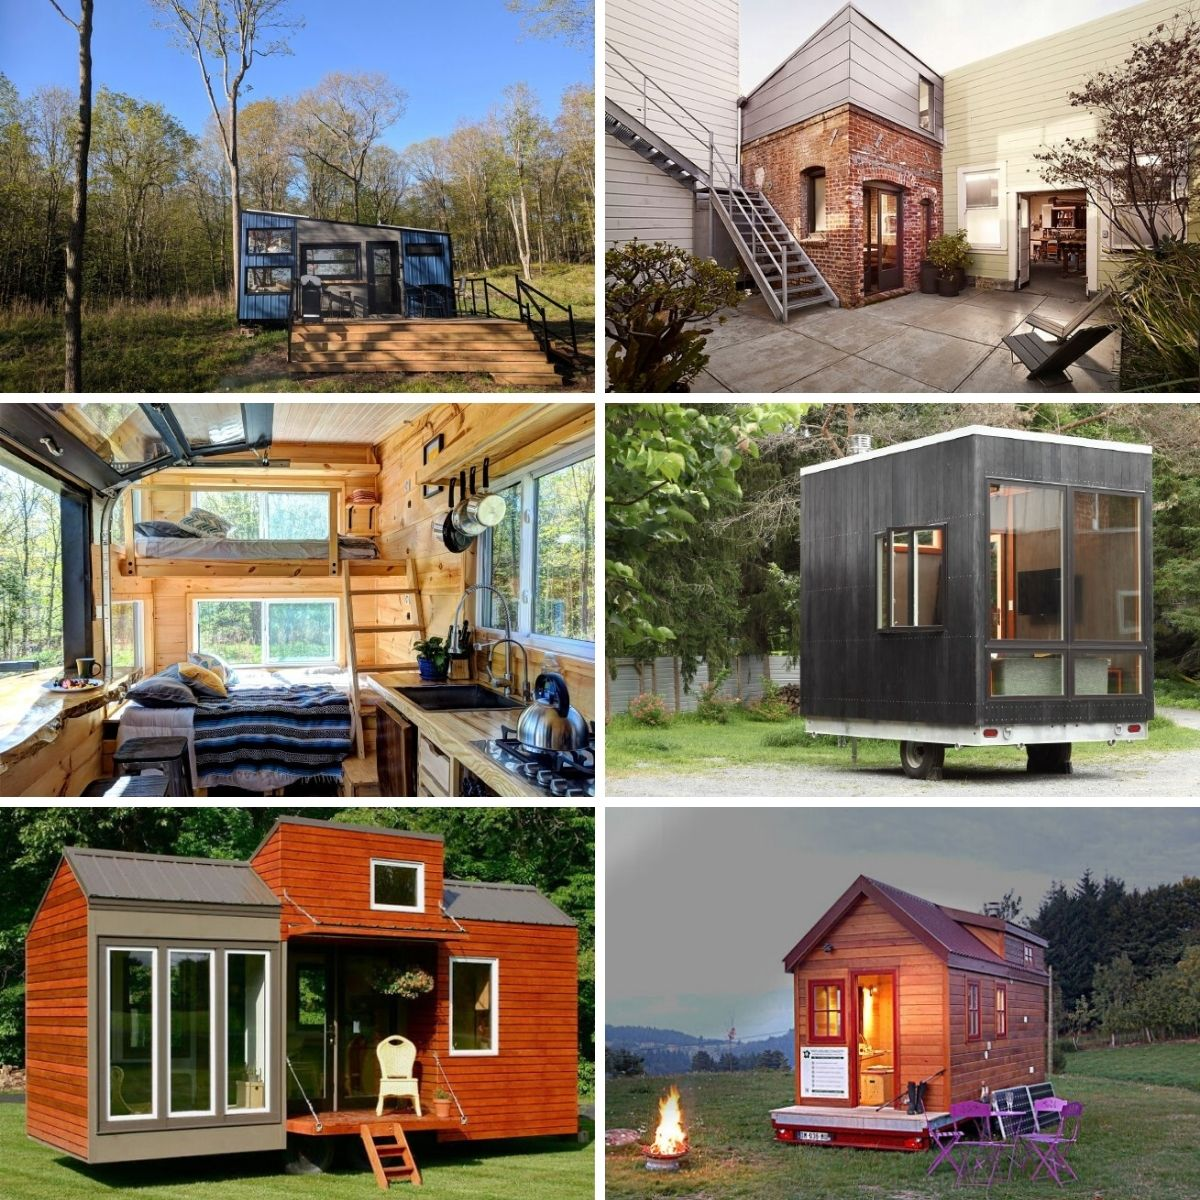 Collage photo featuring several under 200 sf tiny houses from the post.